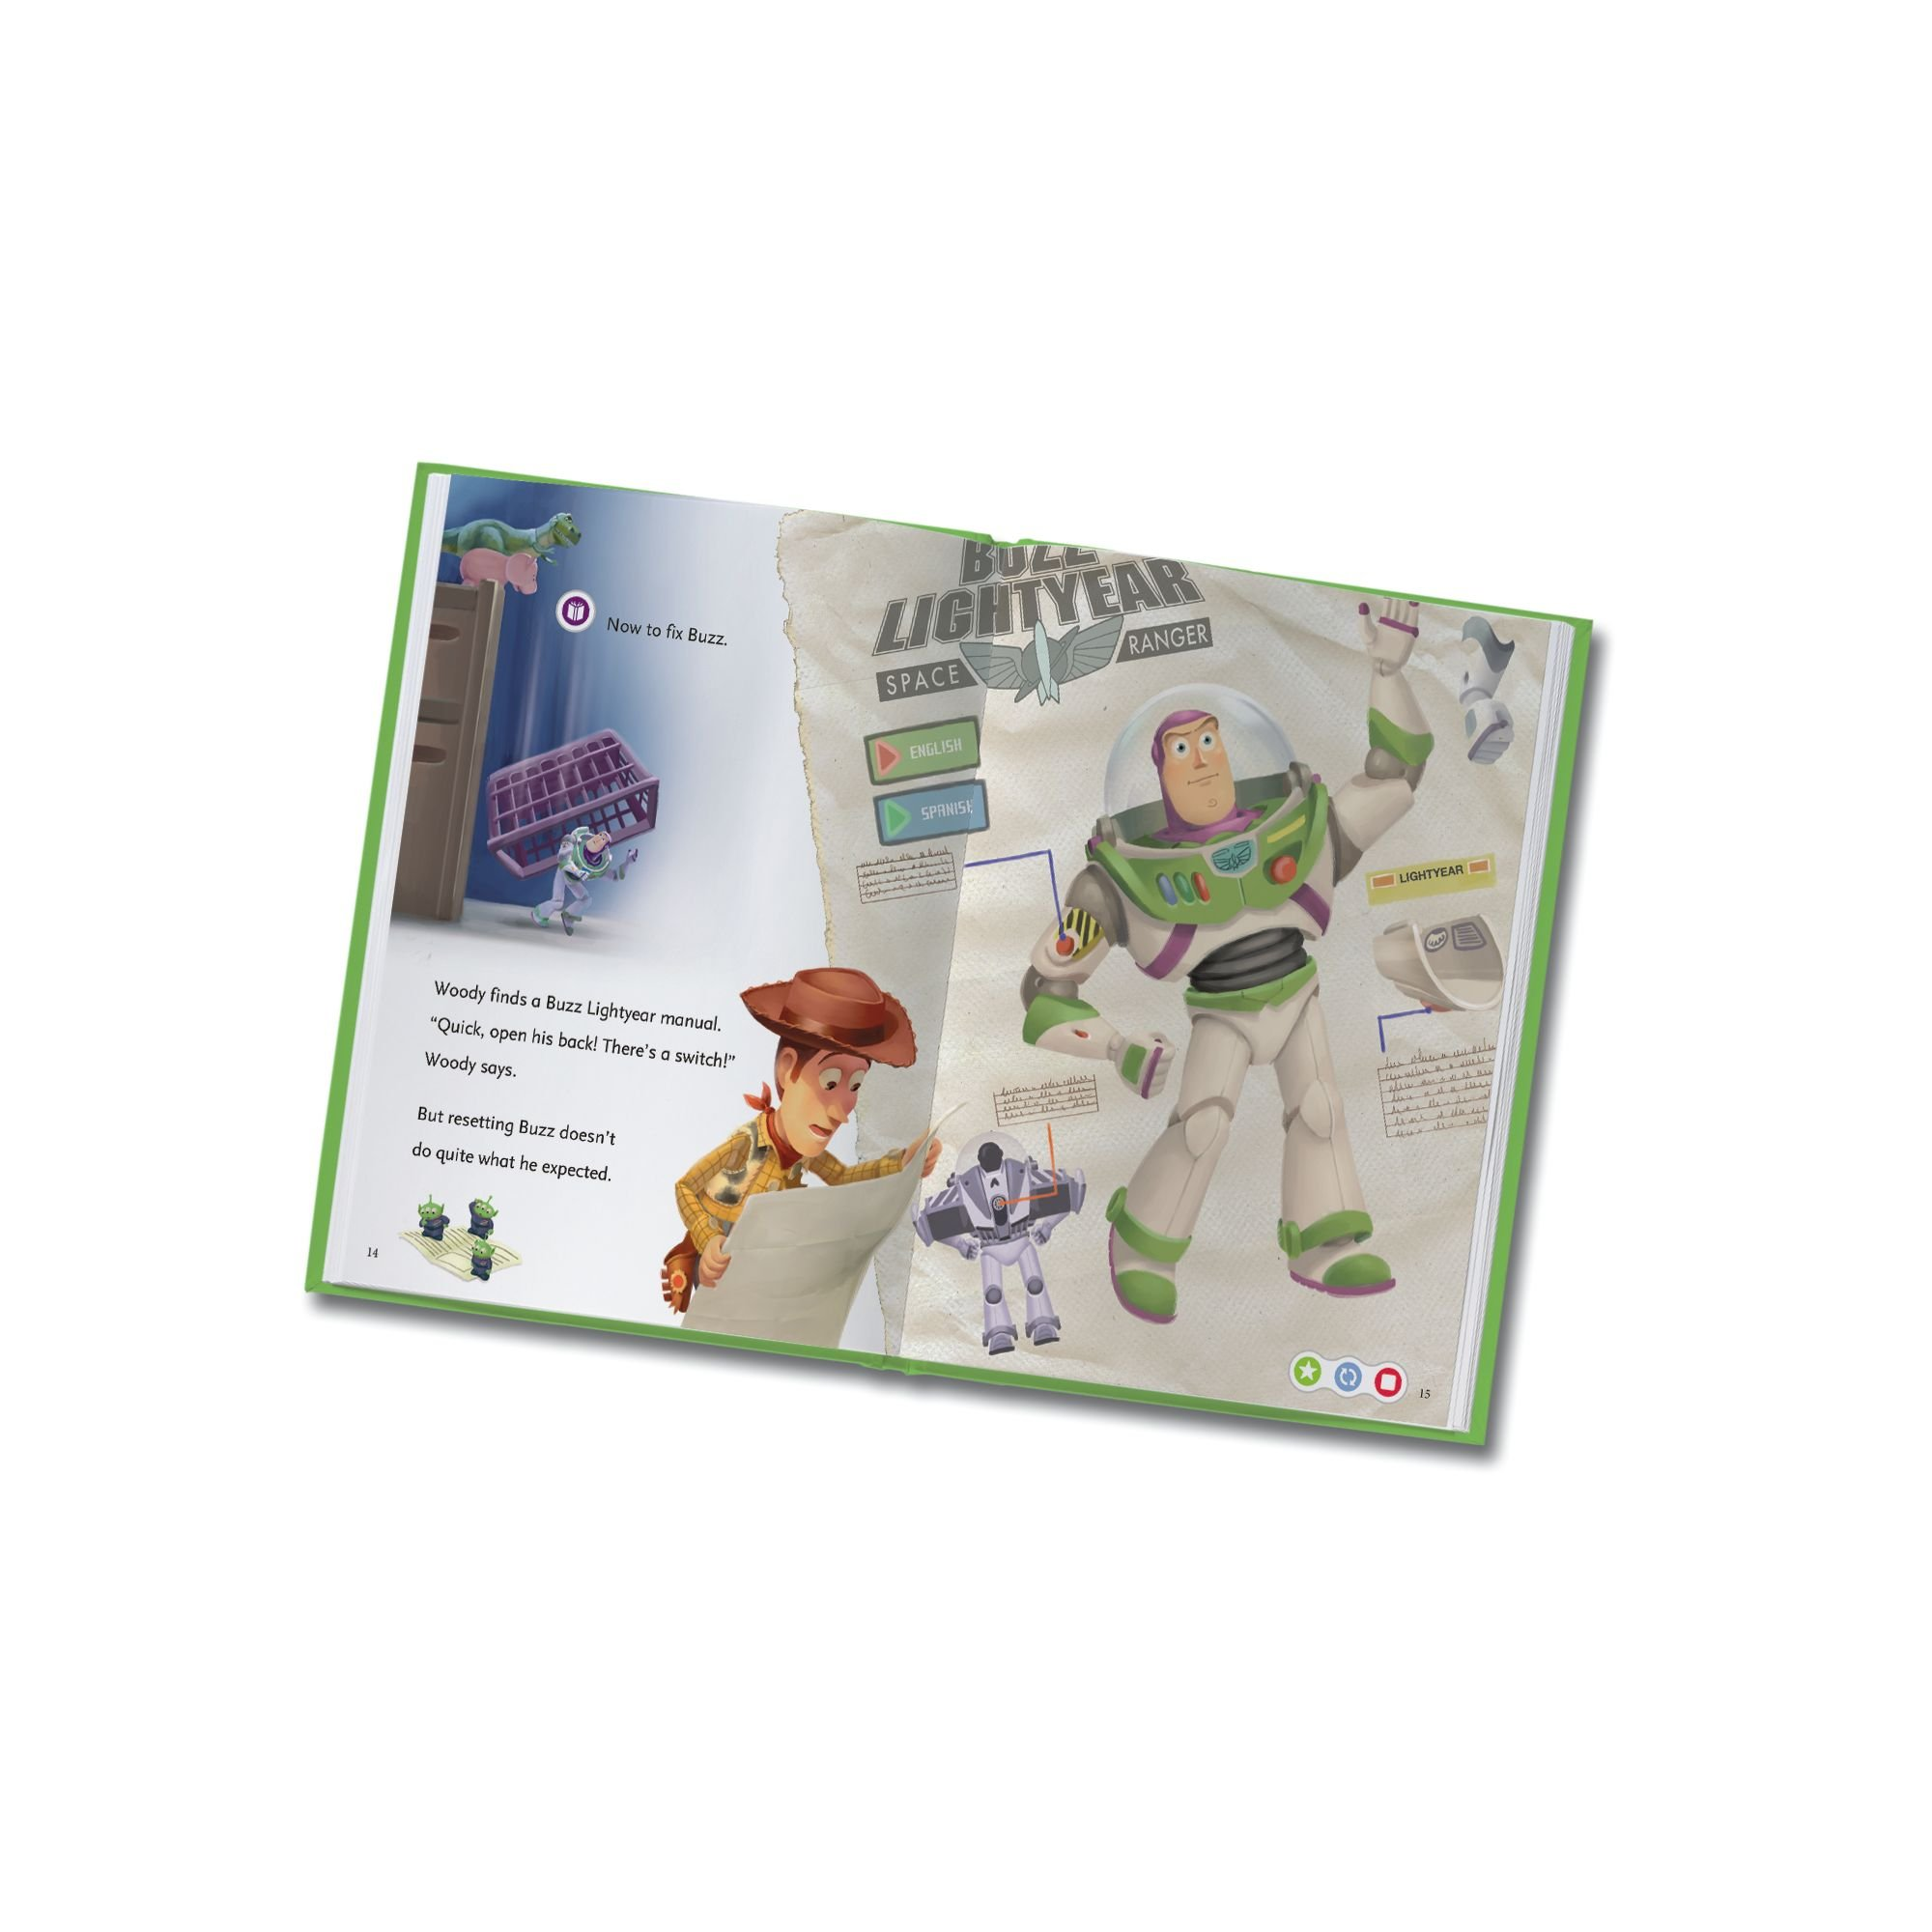 LeapFrog LeapReader Book: Disney Pixar Toy Story 3: Together Again (works with Tag) Packaging May Vary by LeapFrog (Image #6)